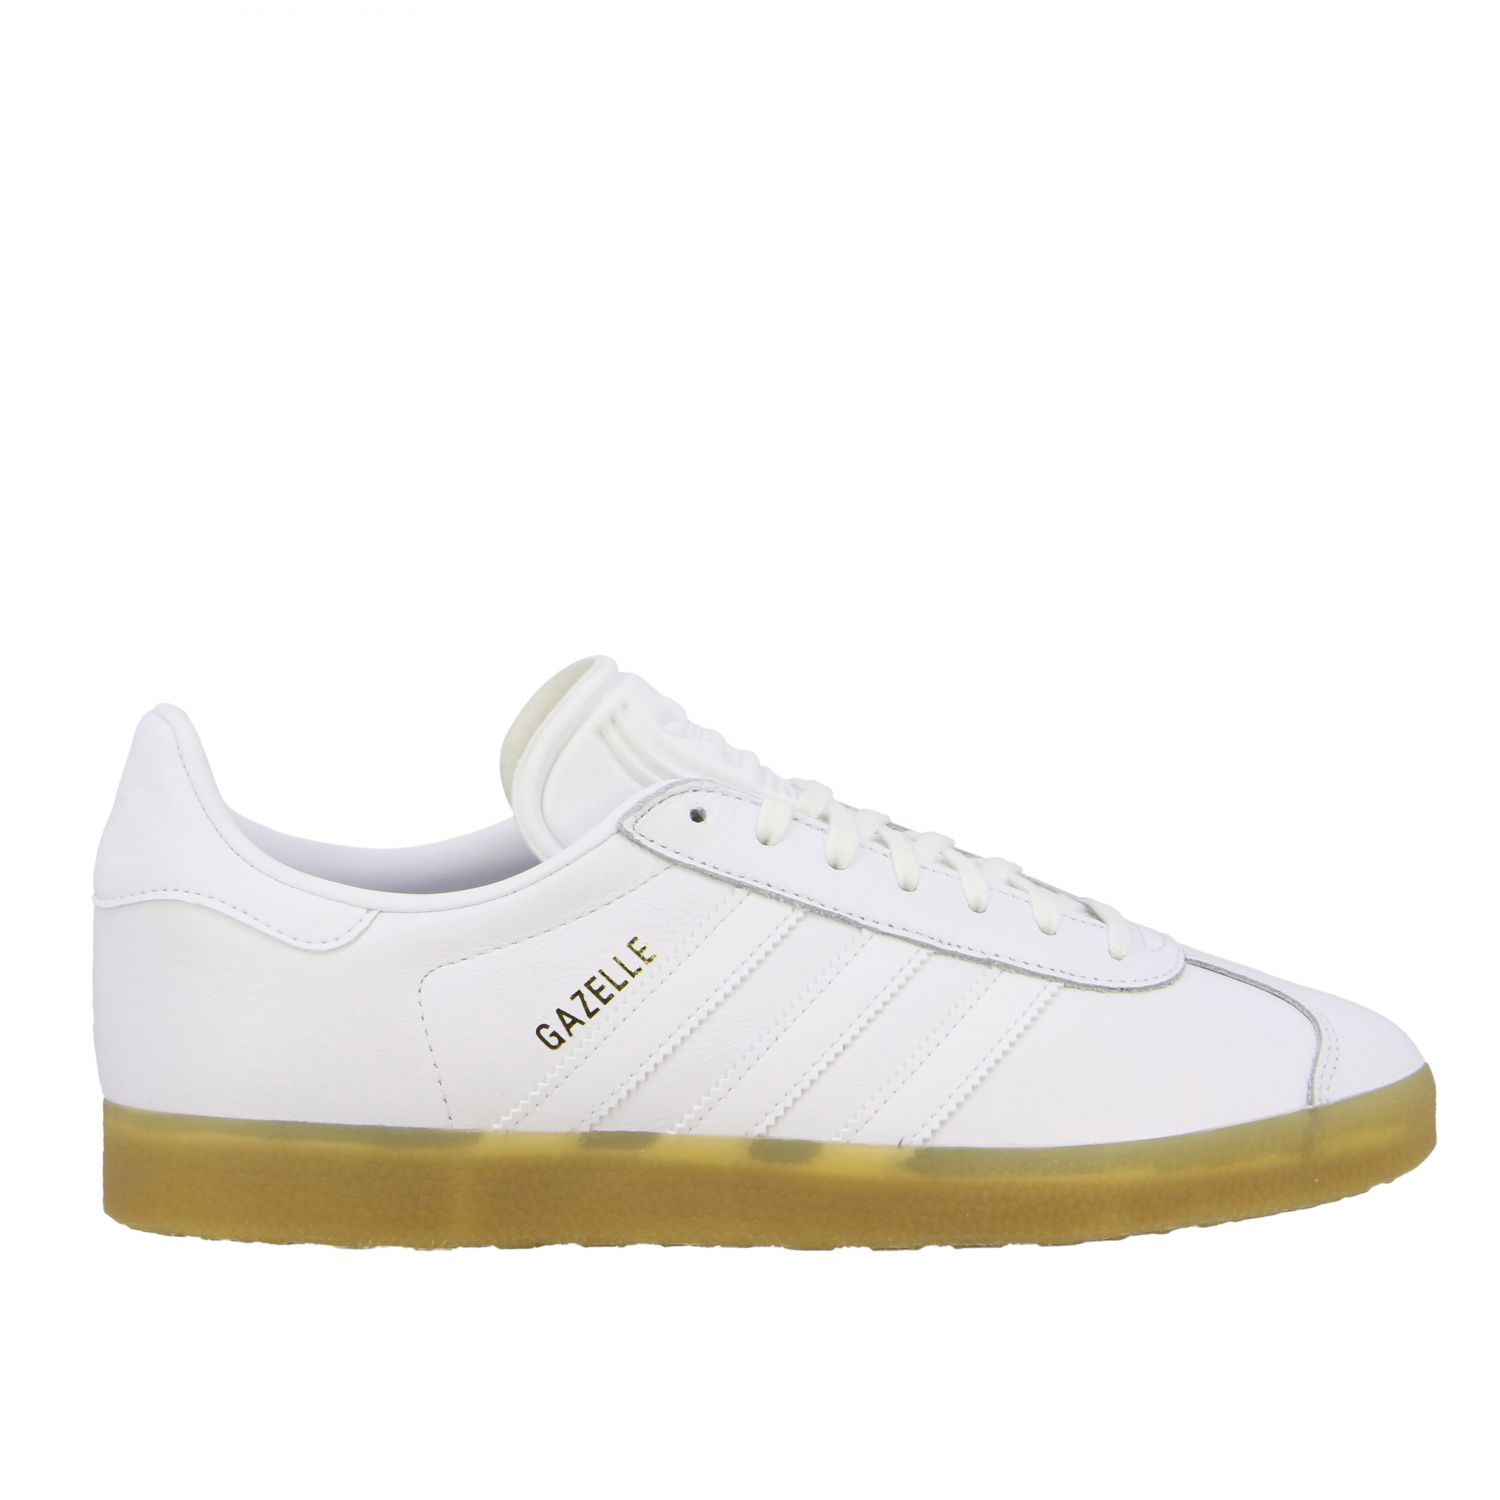 Sneakers Adidas Originals: Adidas Originals Gazelle leather sneakers with logo white 1